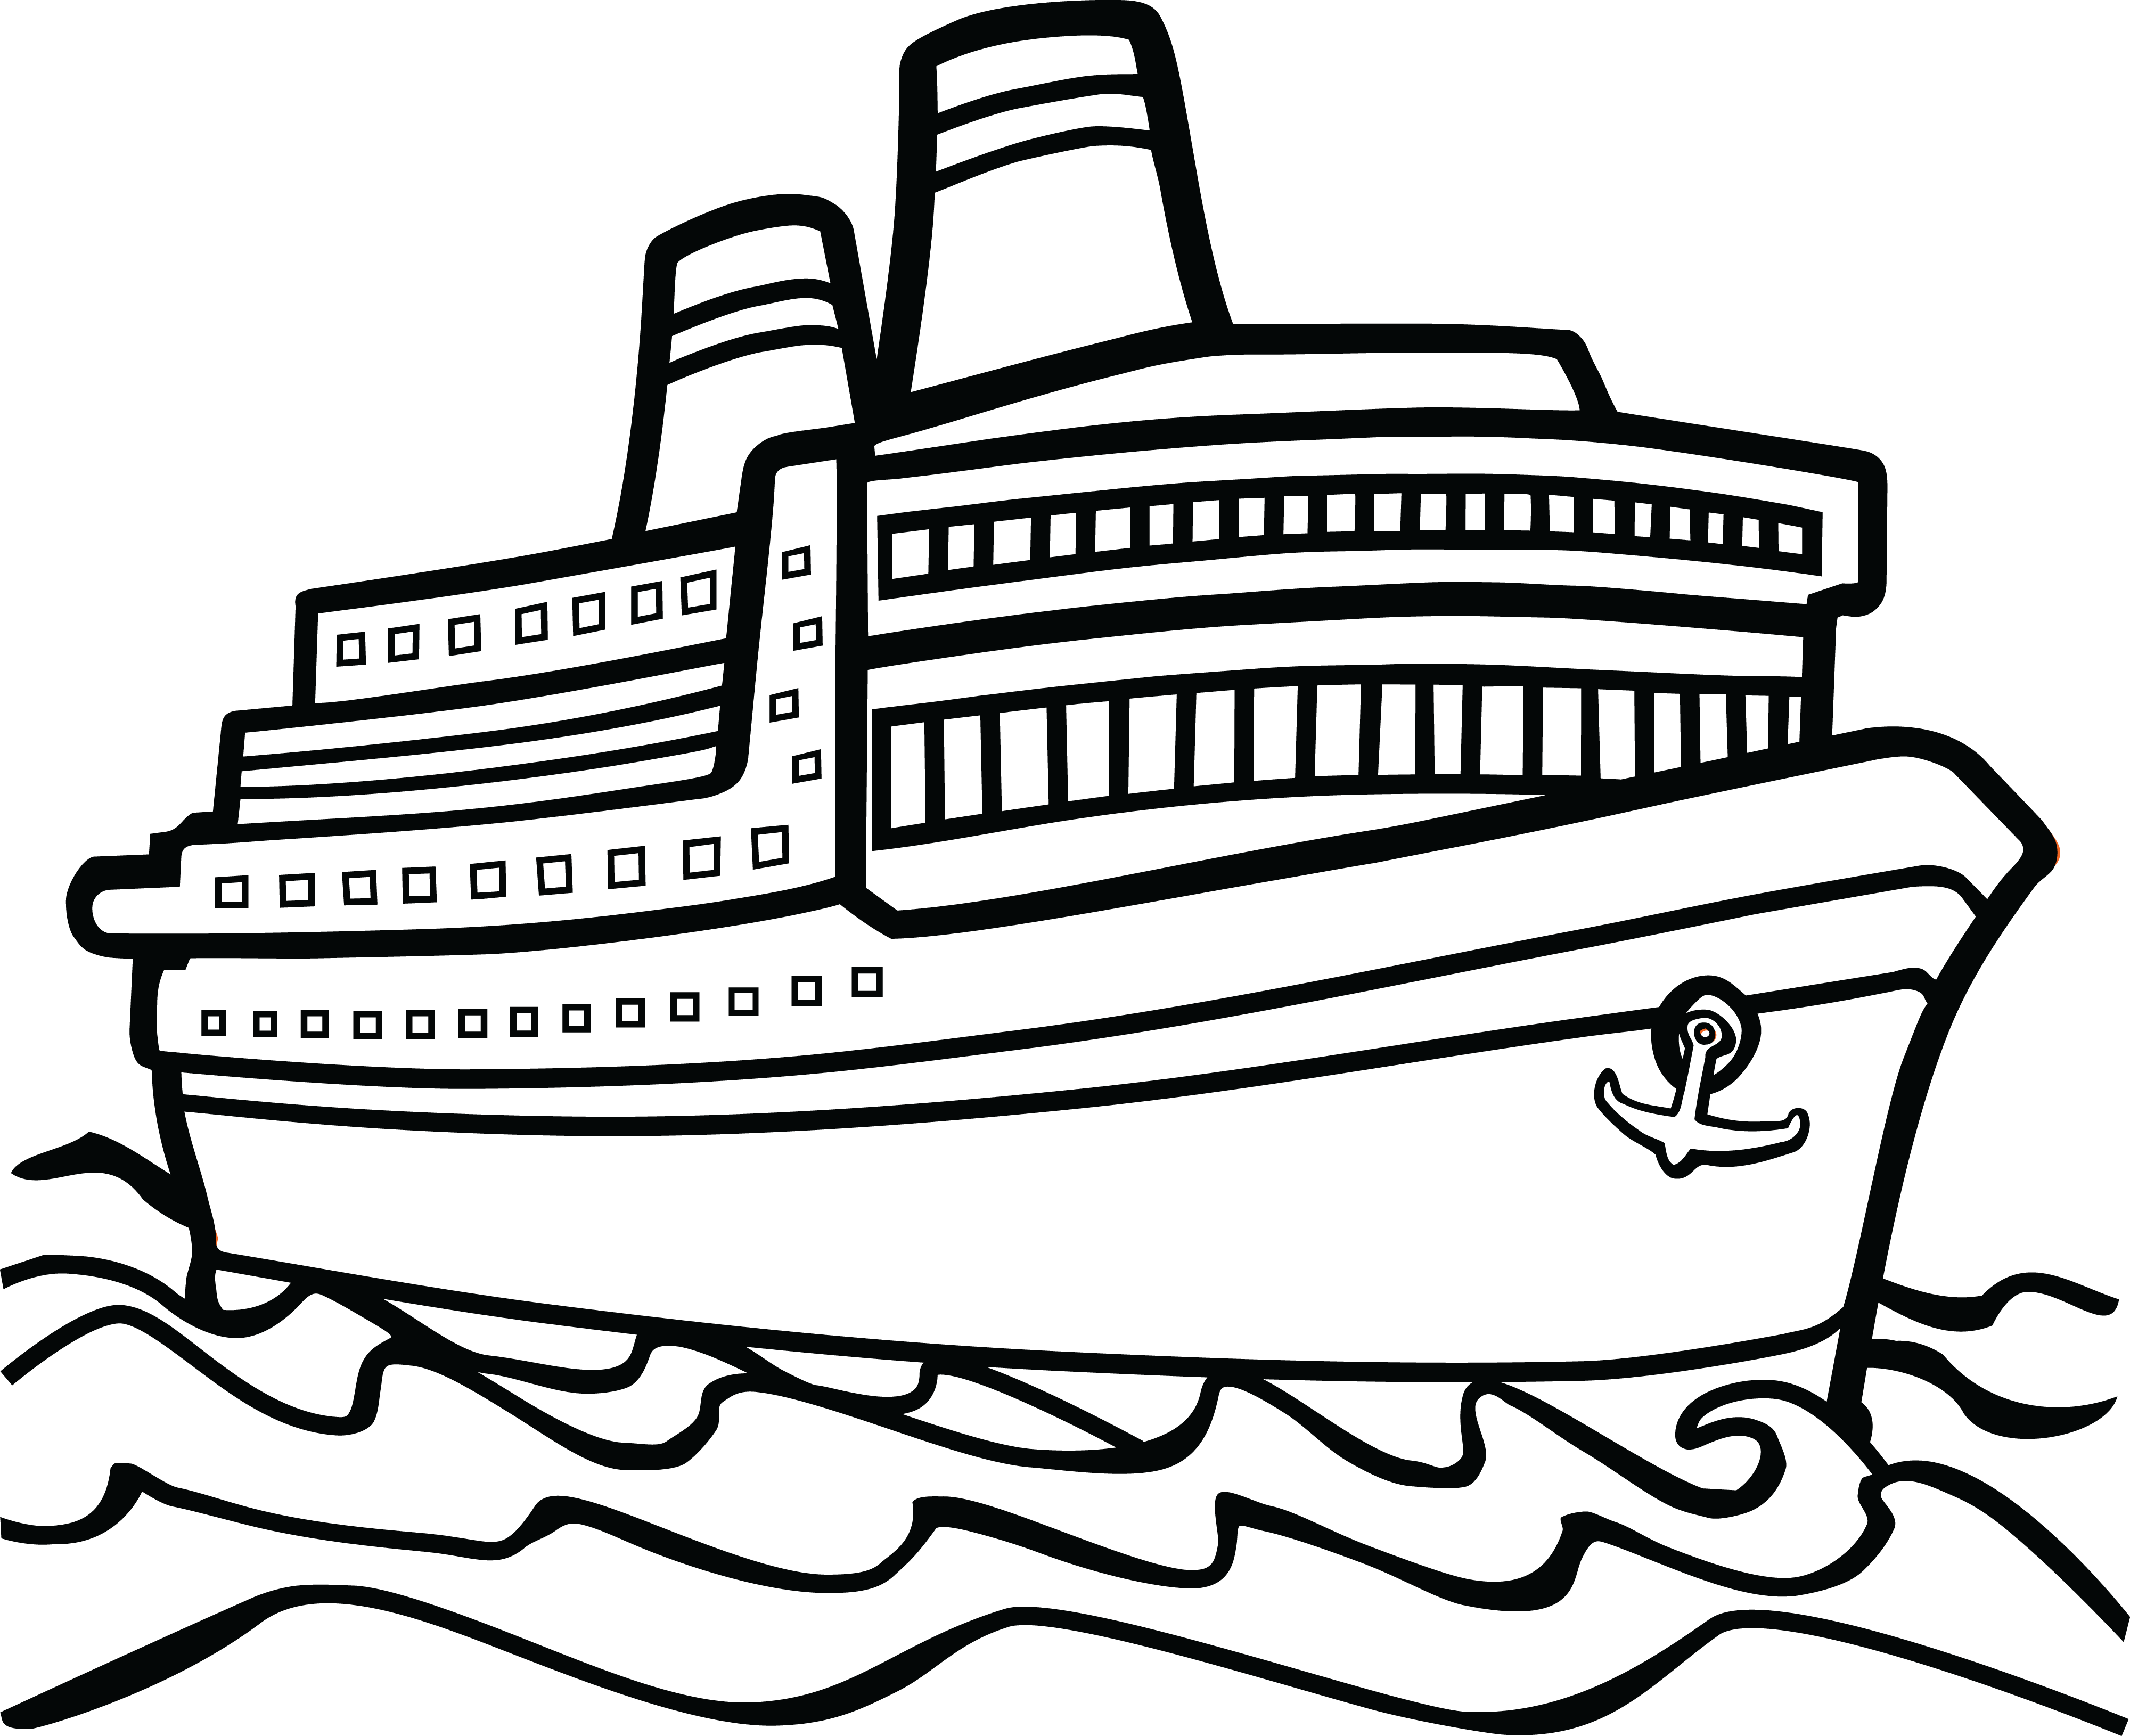 Free Clipart Of A Cruise Boat 00011422